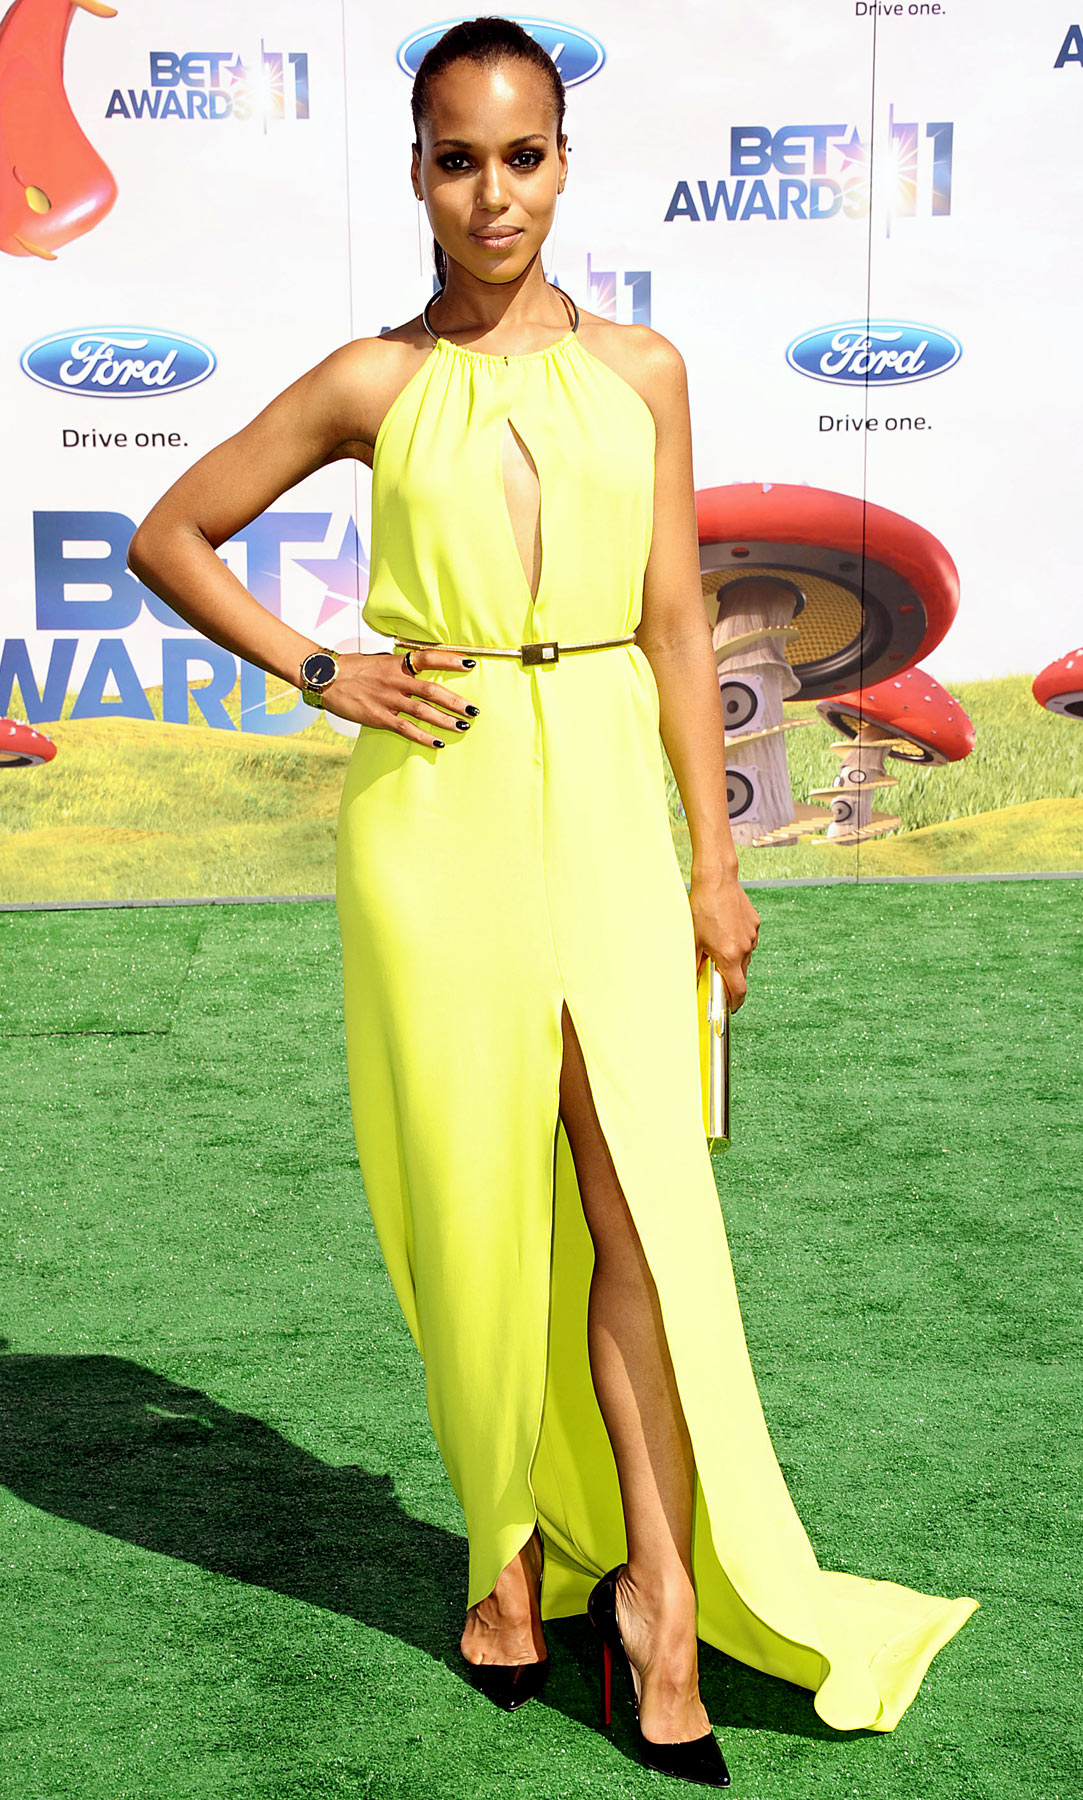 Walking the green carpet at L.A.'s Shrine Auditorium for the BET Awards, Washington stunned in a neon silk column dress with a silver neck ring from Michael Kors' 2012 Resort collection. Black Christian Louboutin pumps completed the edgy look.